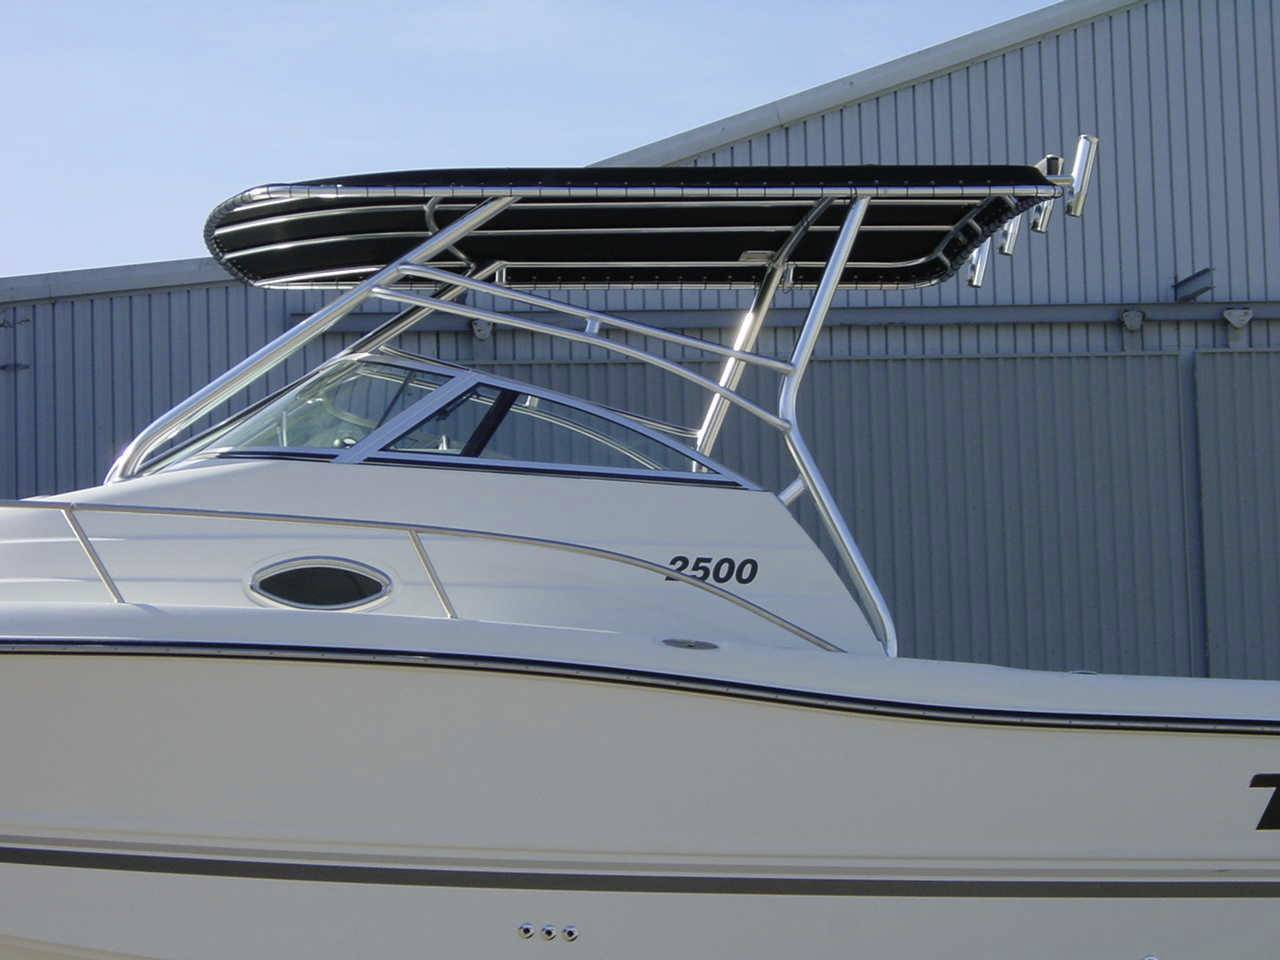 Welcome - Quality T-Tops & Boat Accessories